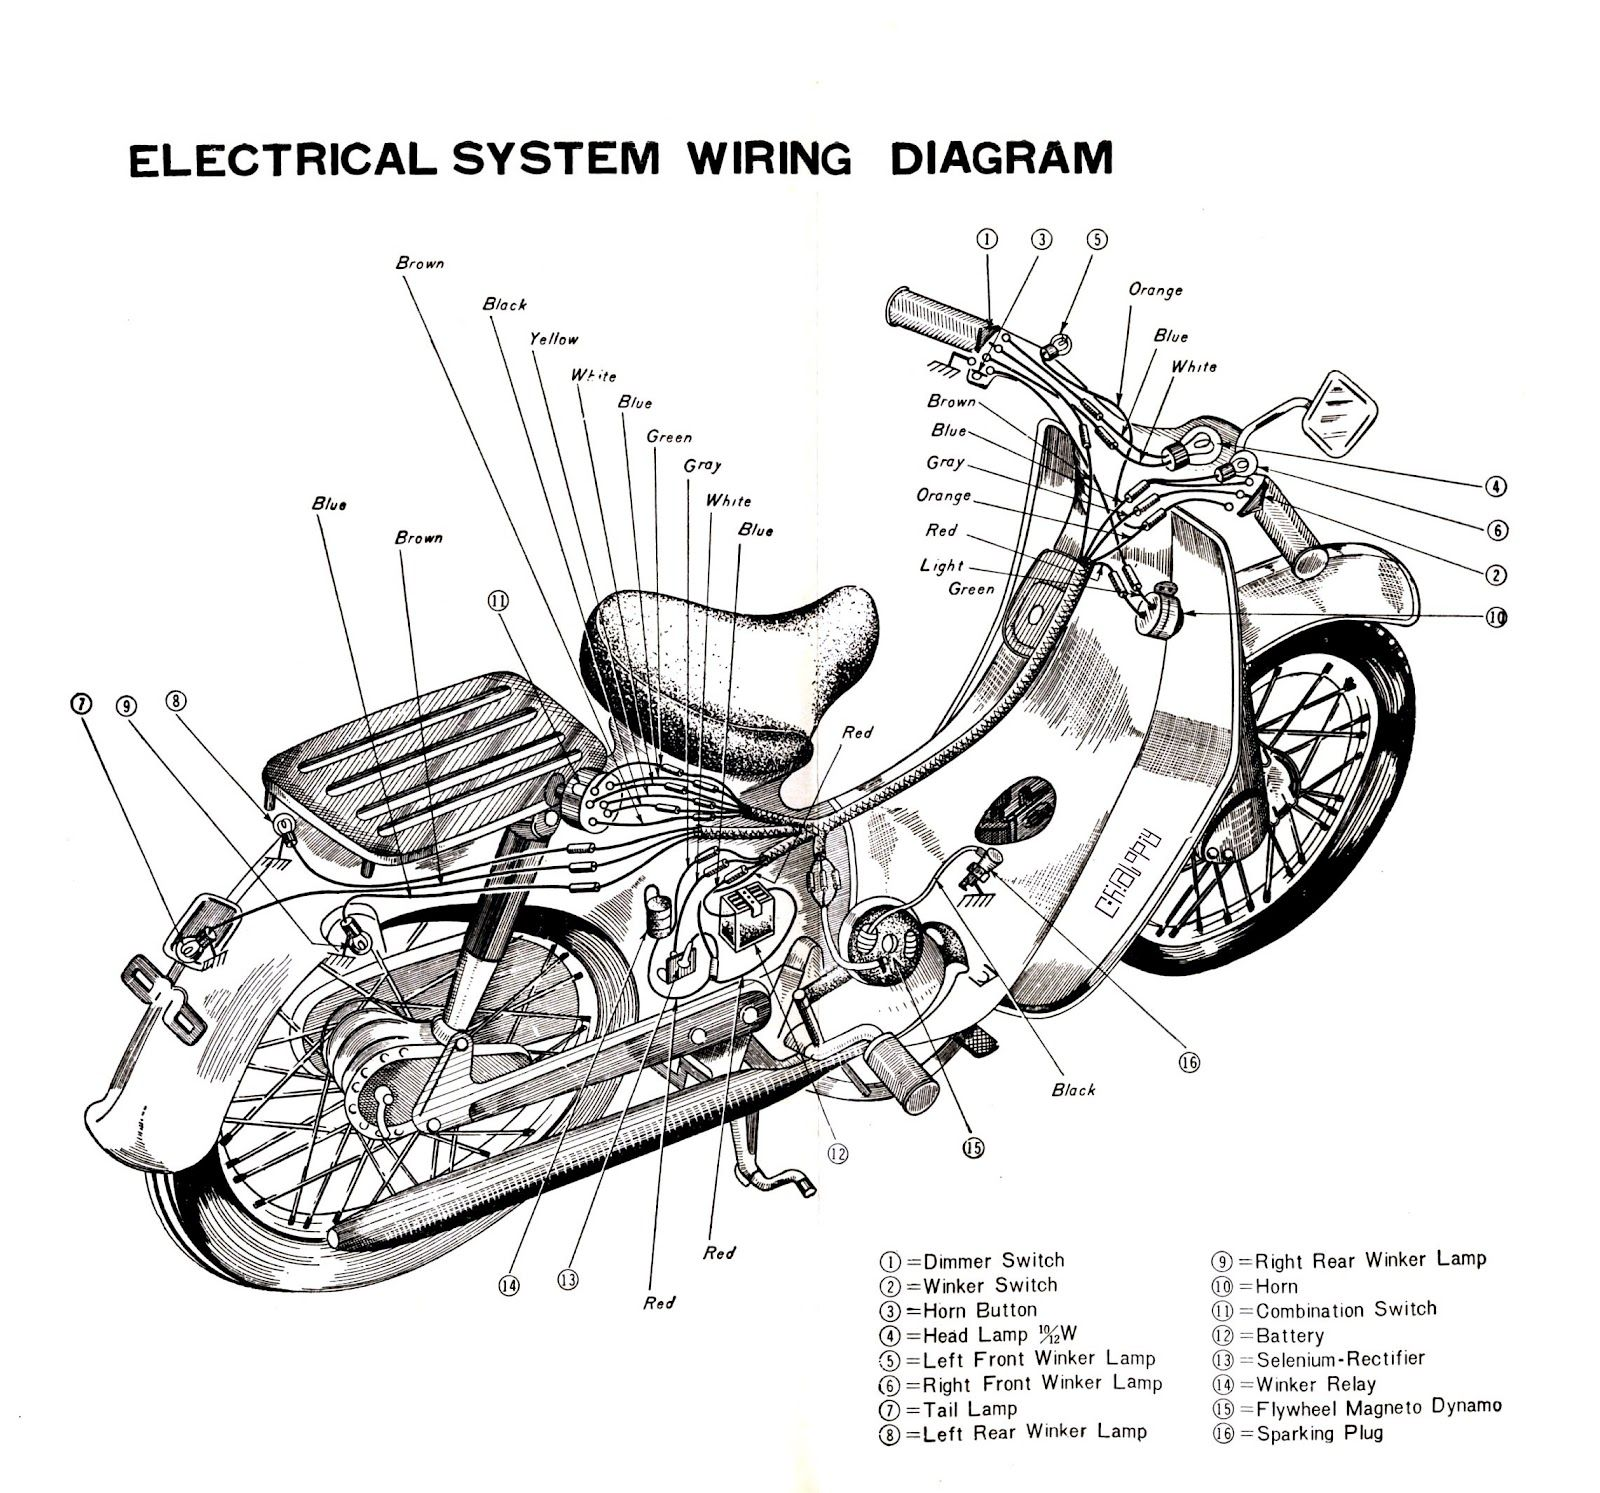 Honda C50 Wiring Diagram Library Electric Motor Rectifier Super Club Vintage Motorcycles Cool Cub Motorcycle